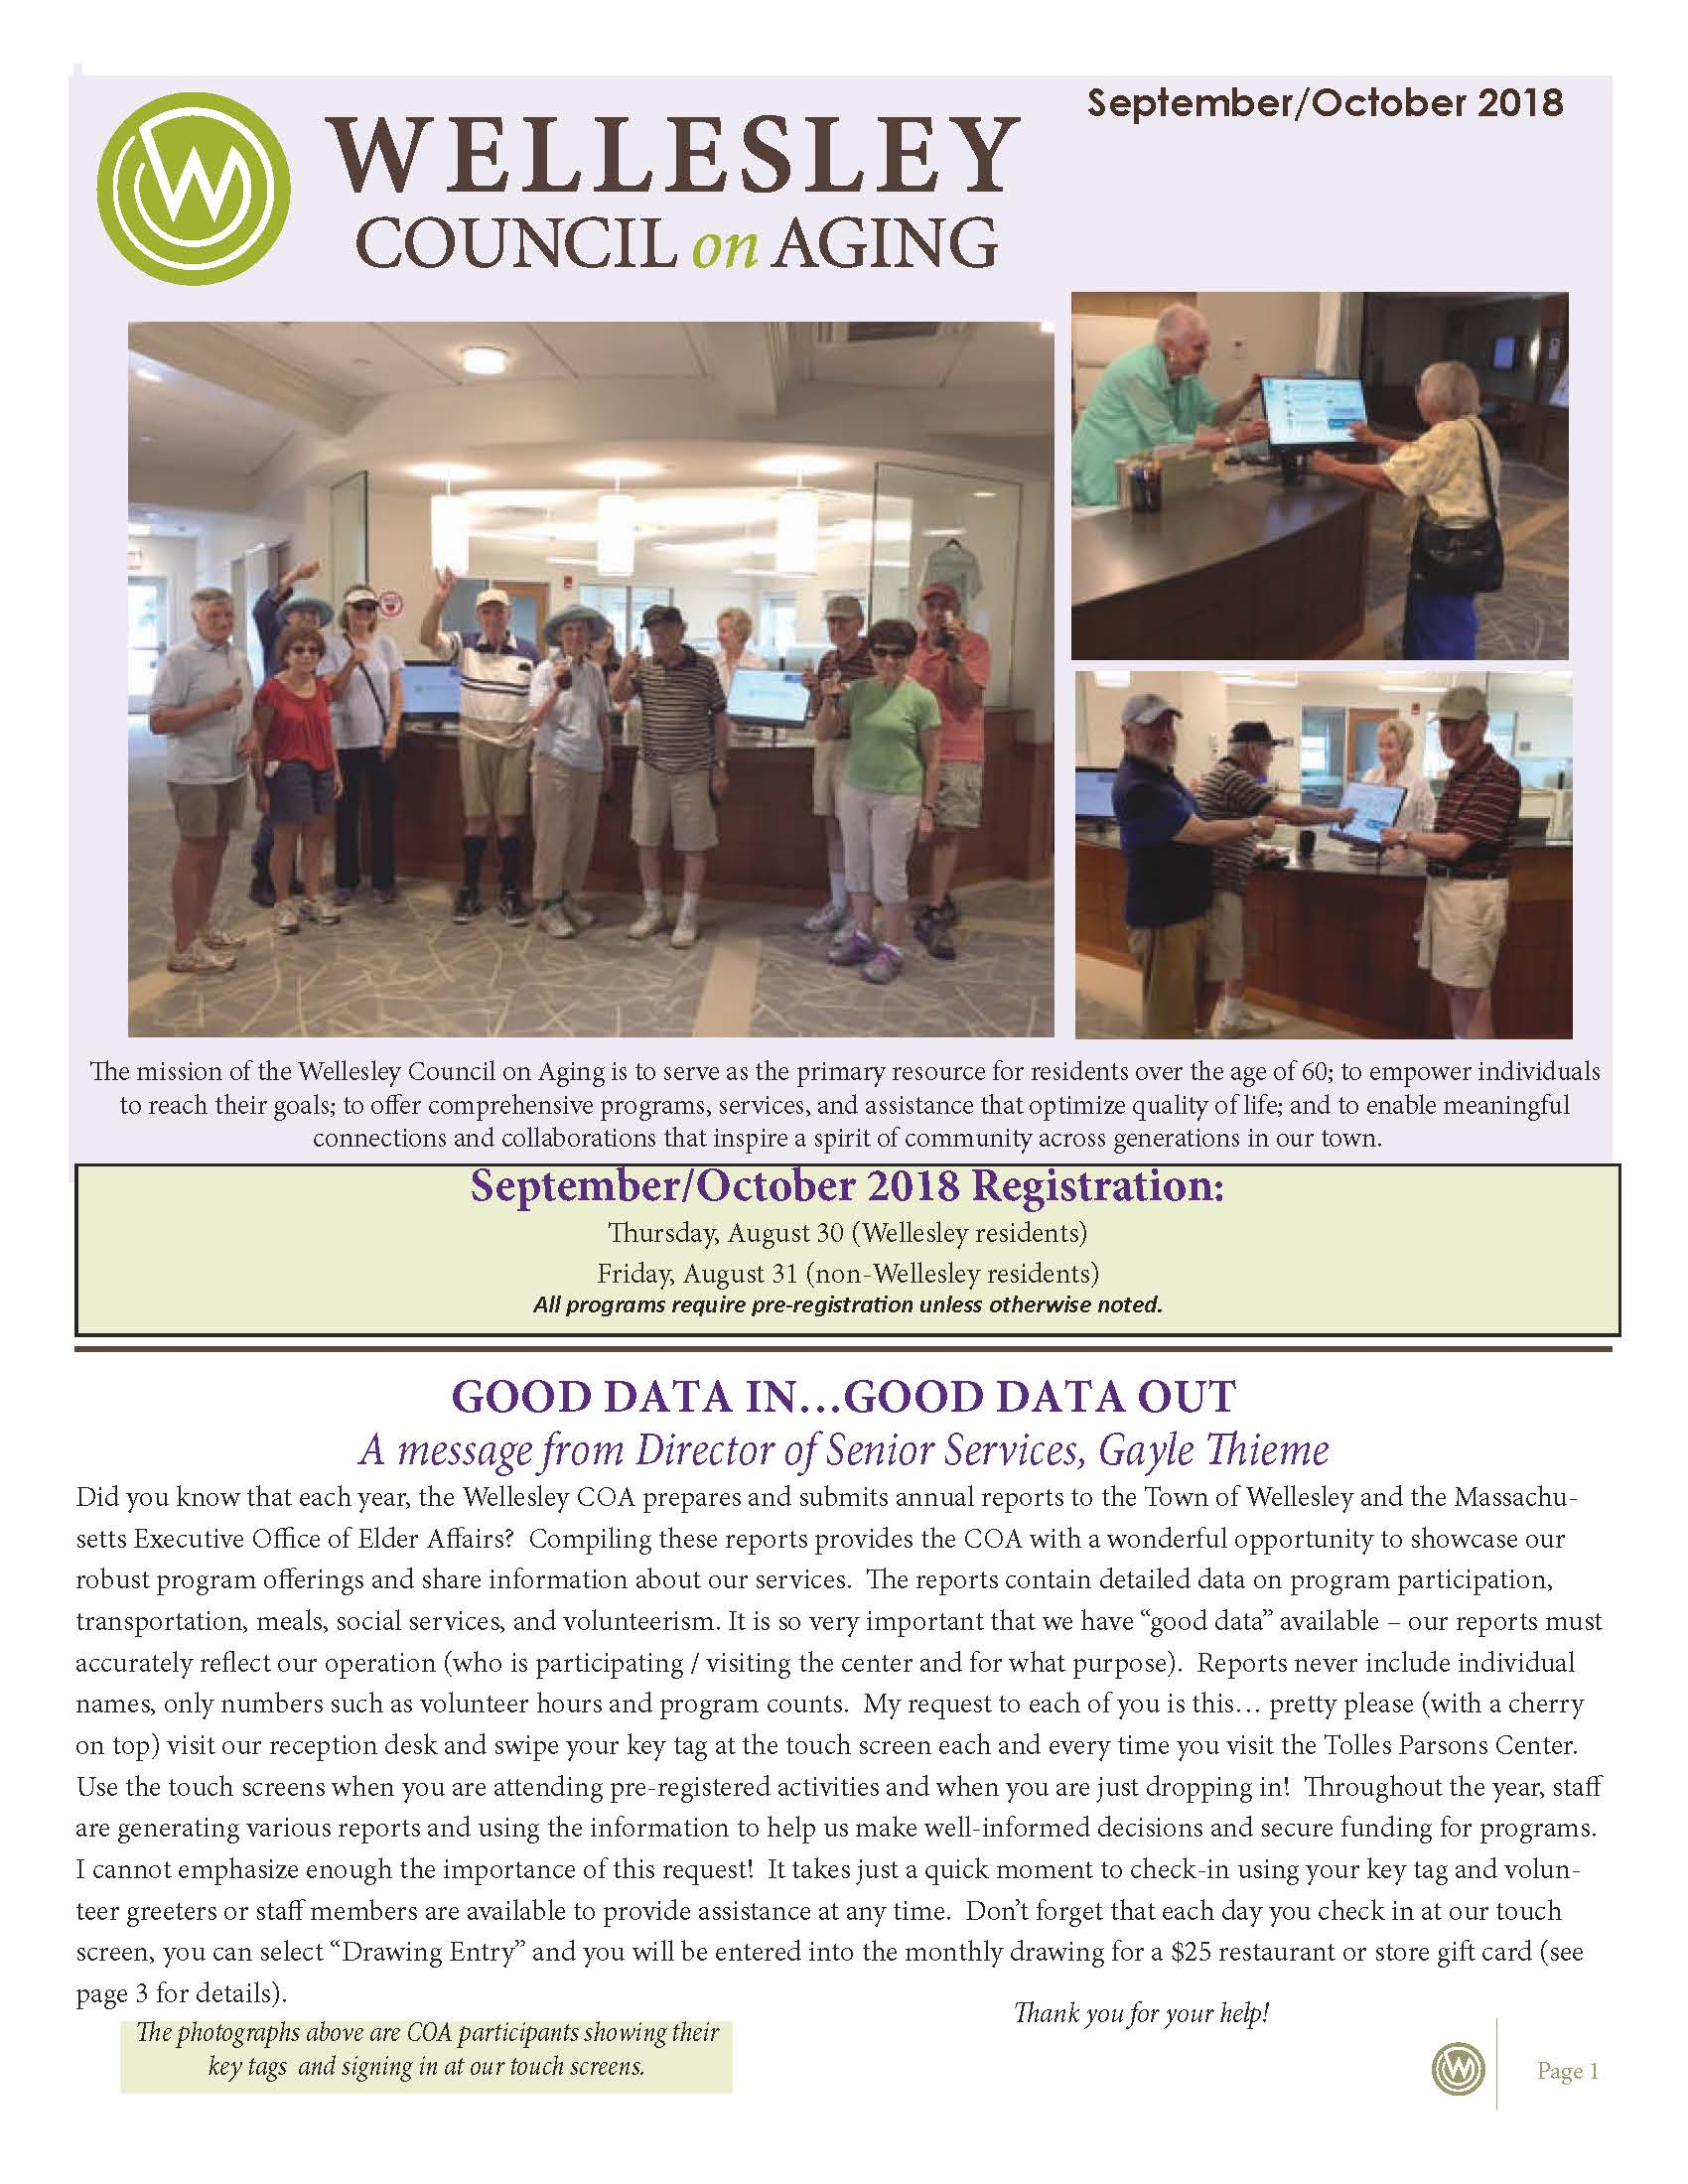 September October 2018 Newsletter Front Cover